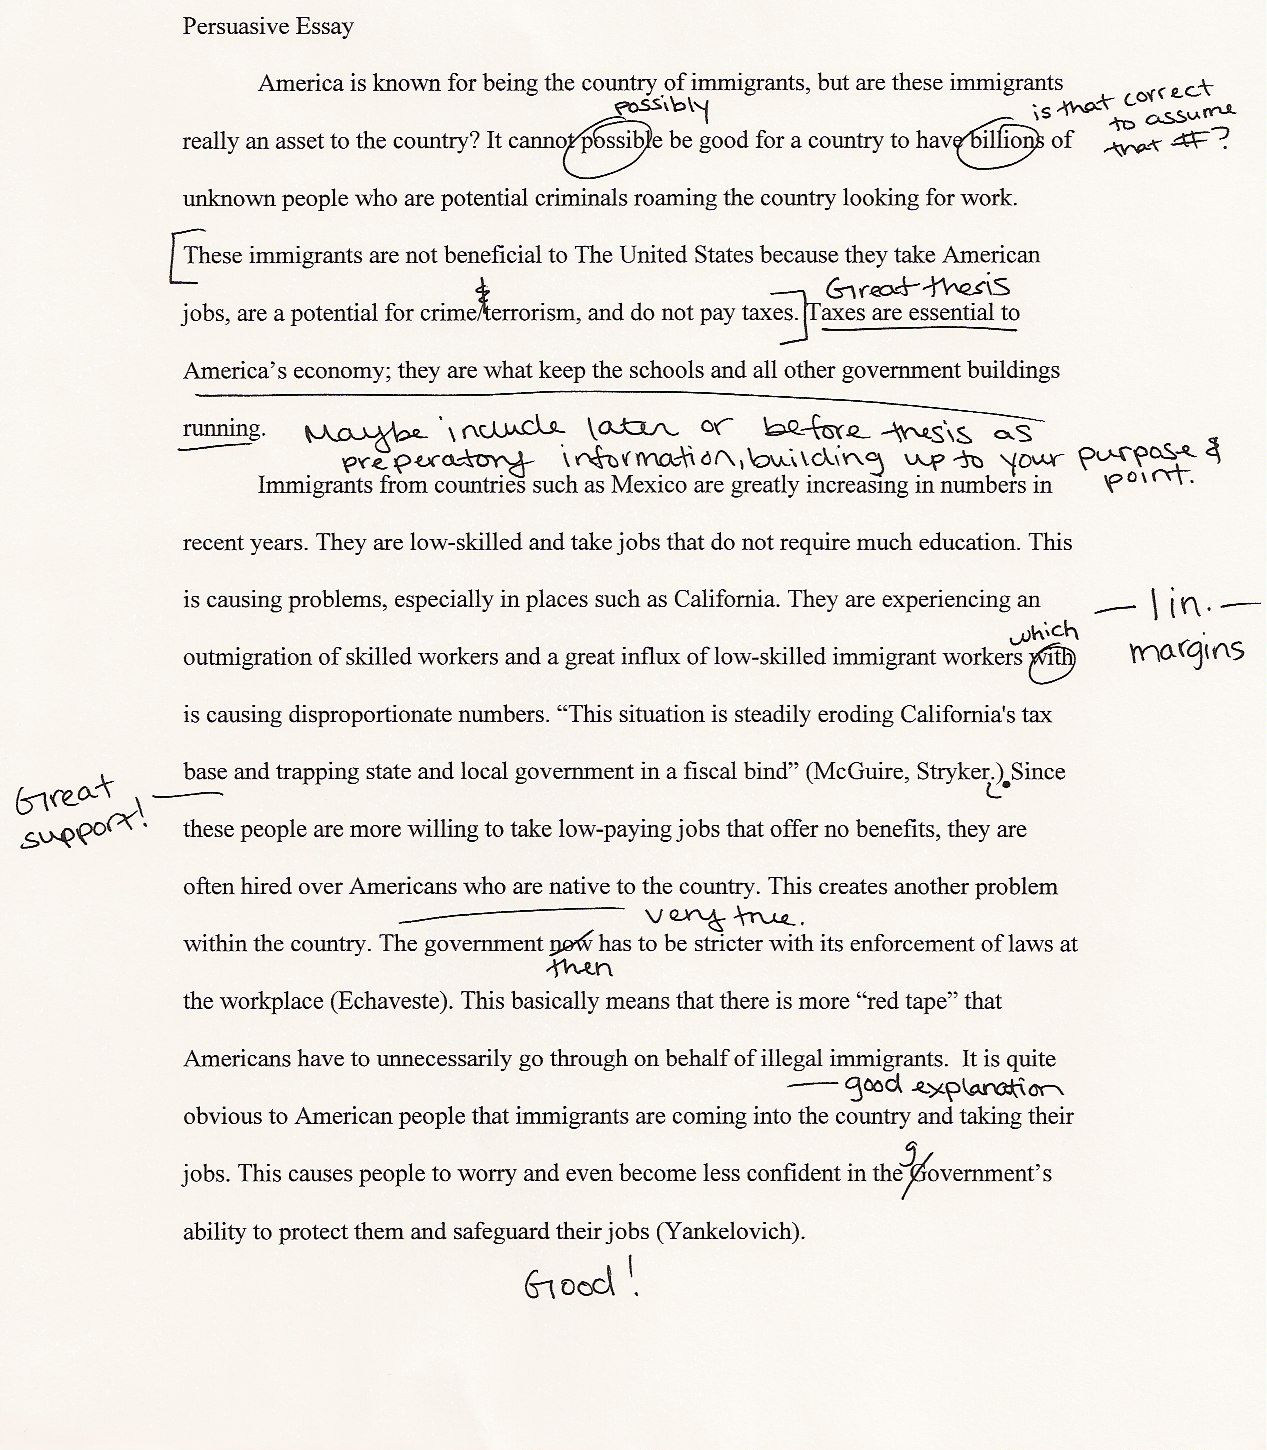 019 Research Paper Interesting Topics For Persuasive Wonderful A To Write On Argumentative Full